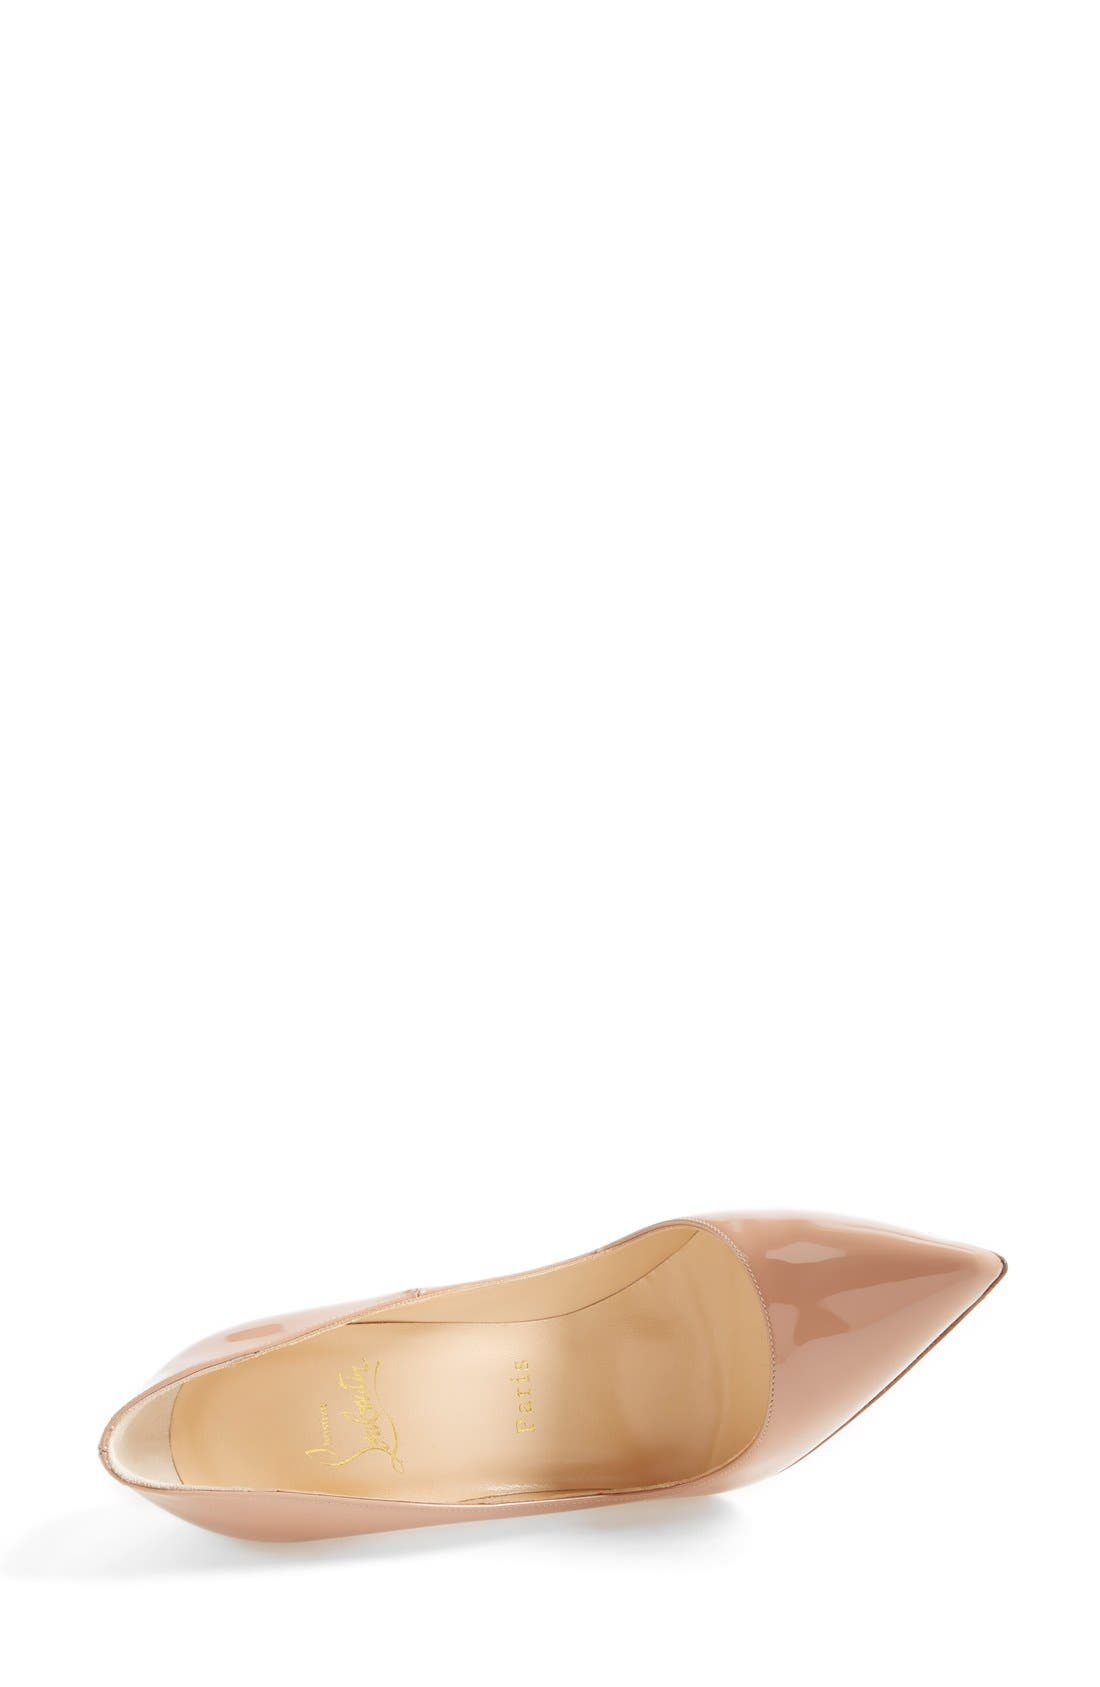 Alternate Image 3  - Christian Louboutin 'So Kate' Pointy Toe Pump